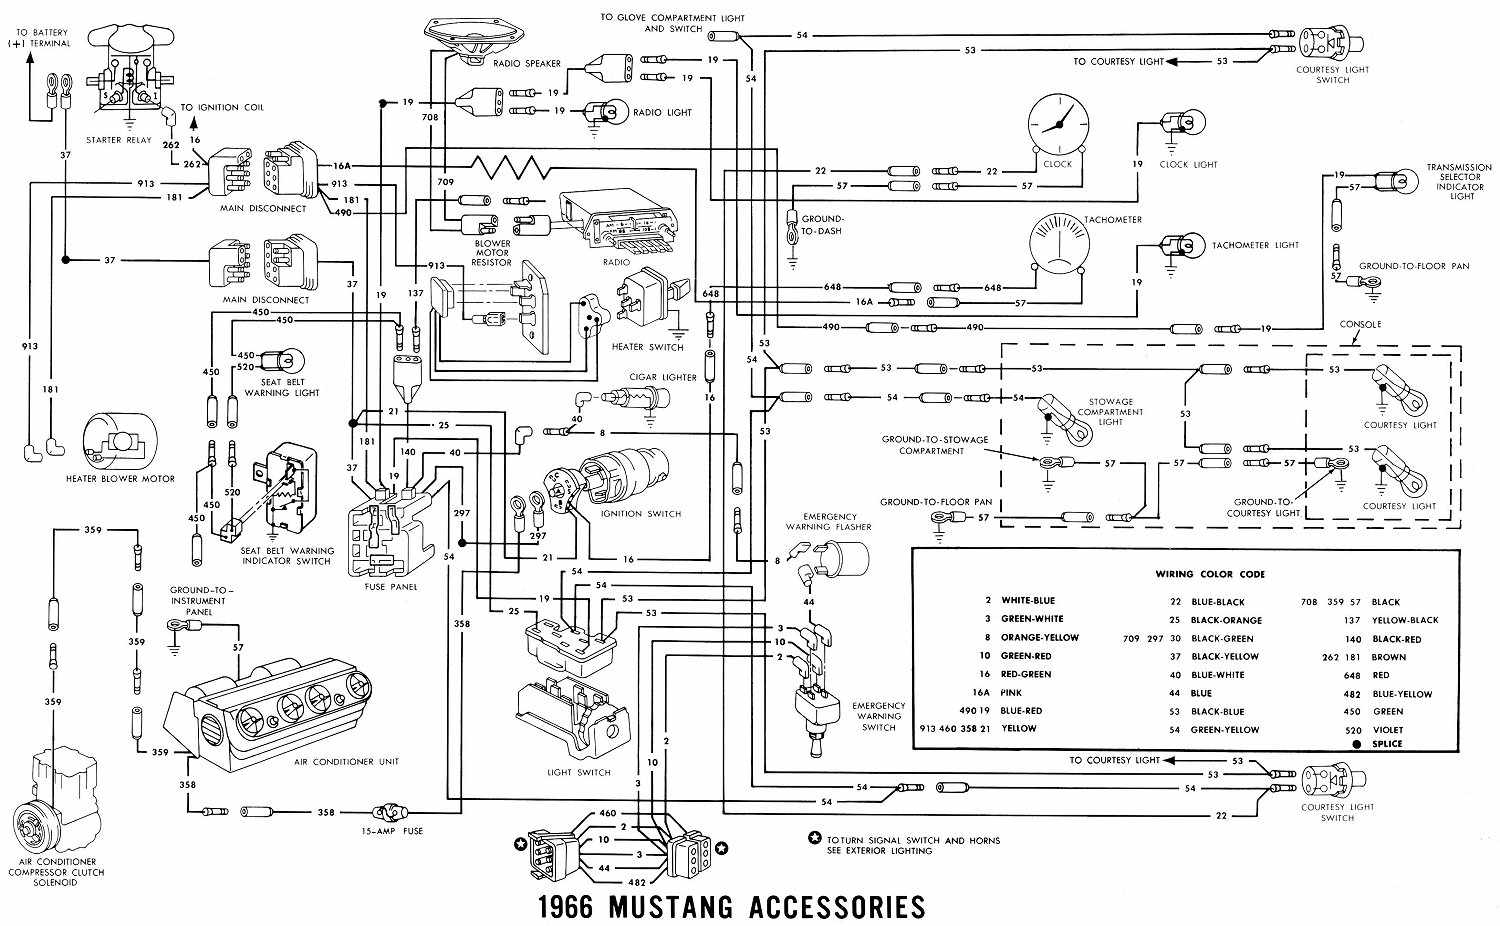 Accessories Electrical Wiring Diagrams on 2001 ford f150 radio wiring diagram